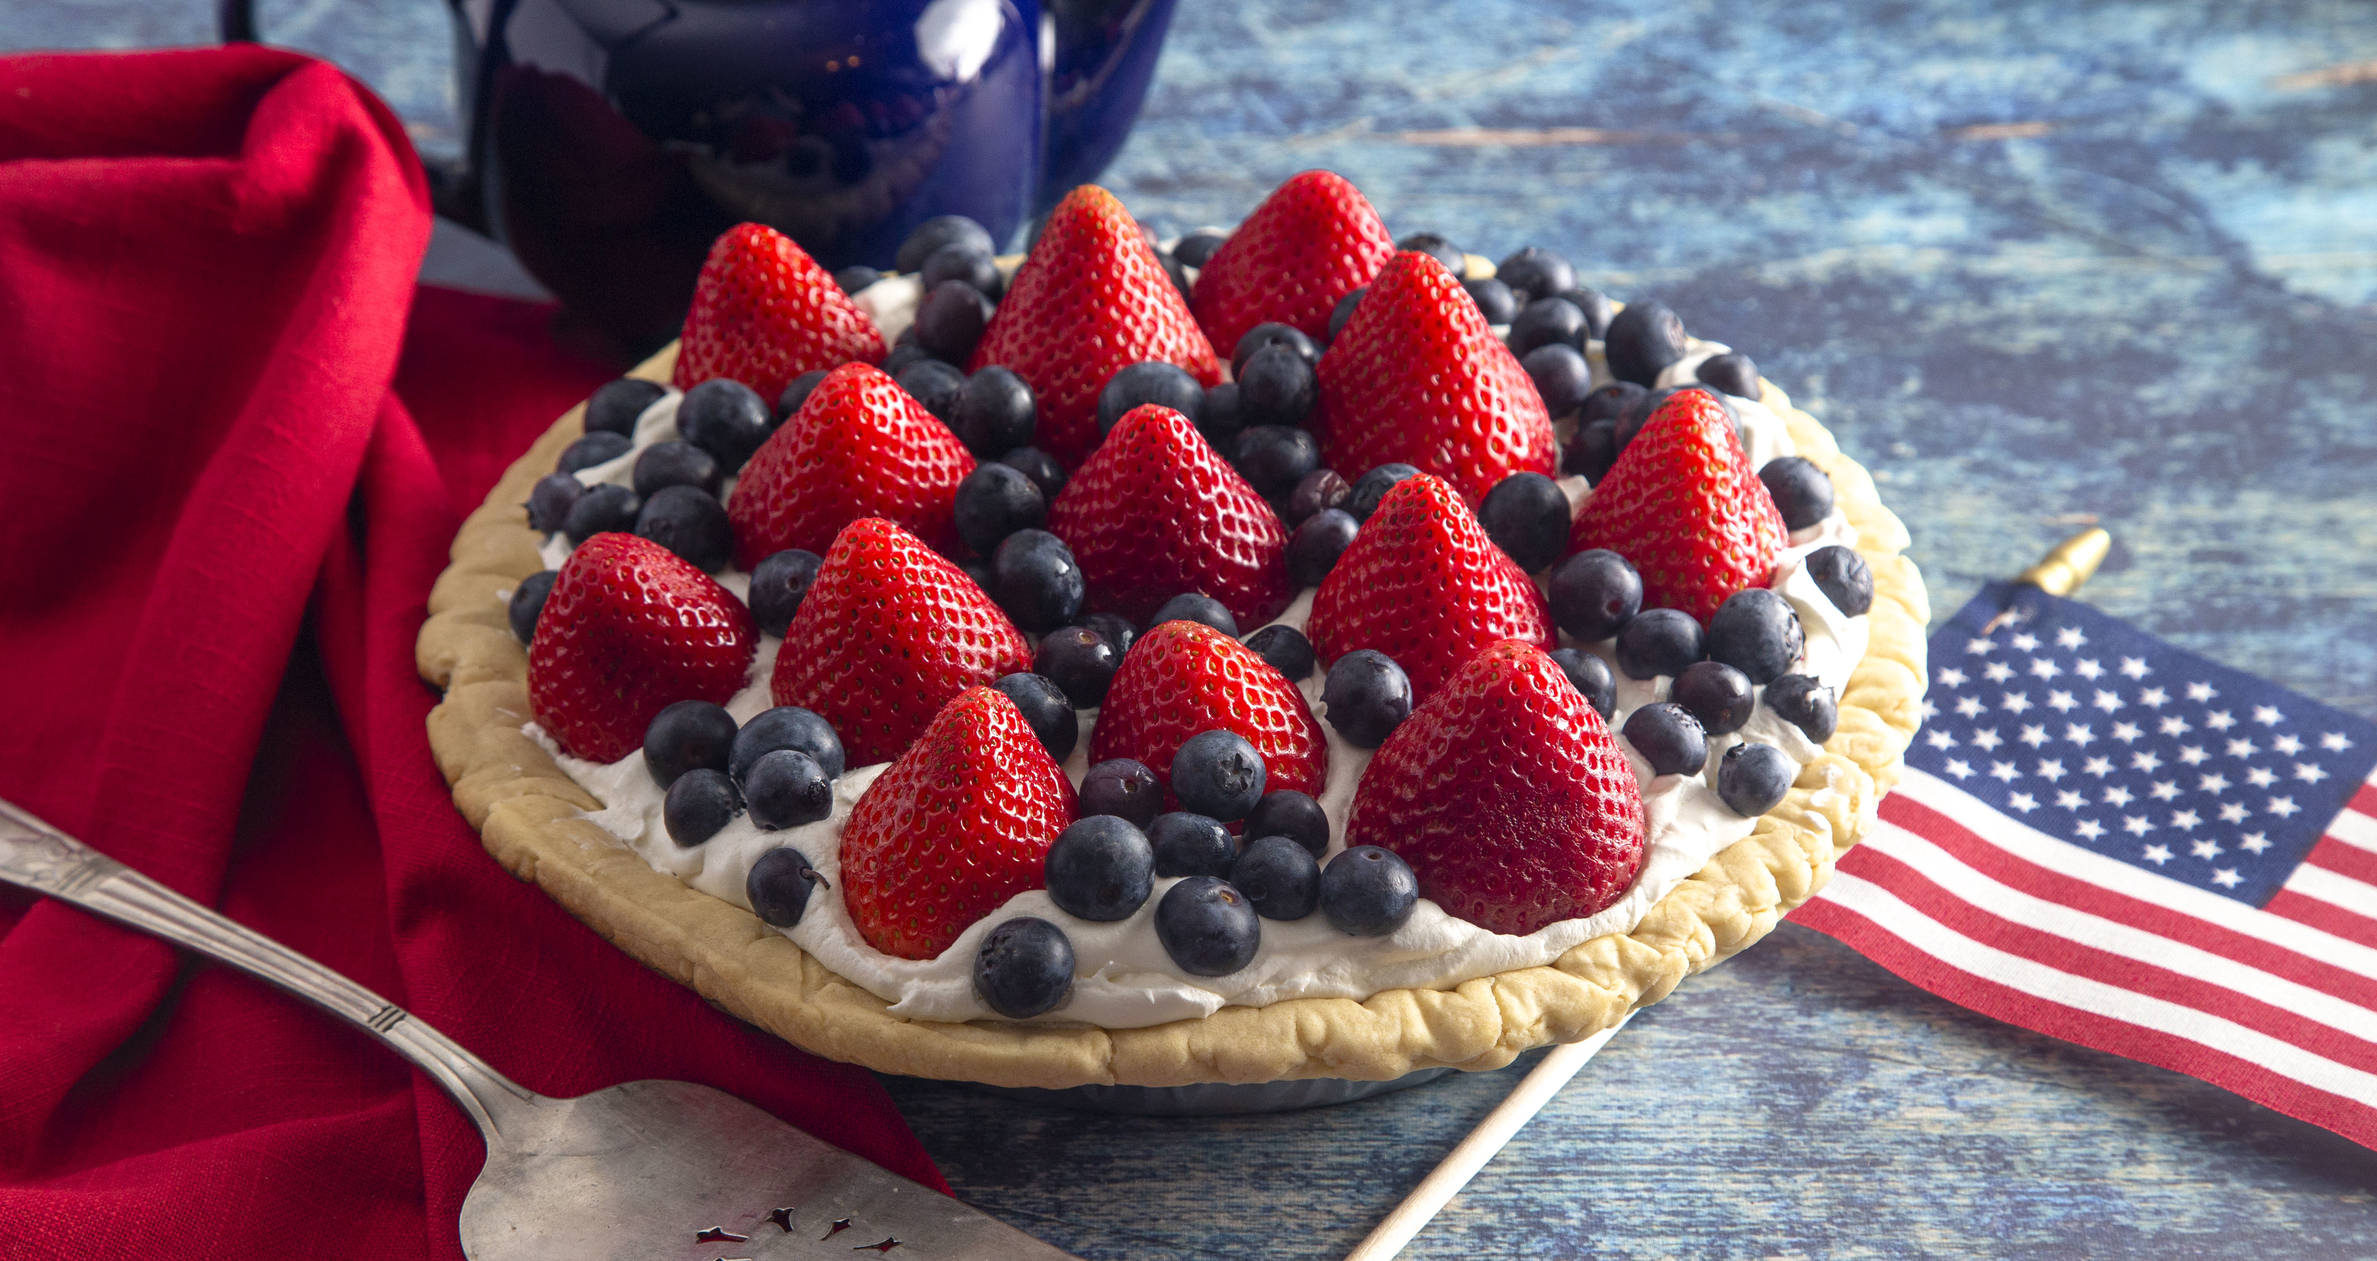 Strawberry and Blueberry Fresh Summer Pie on a Distressed Blue Wooden Table